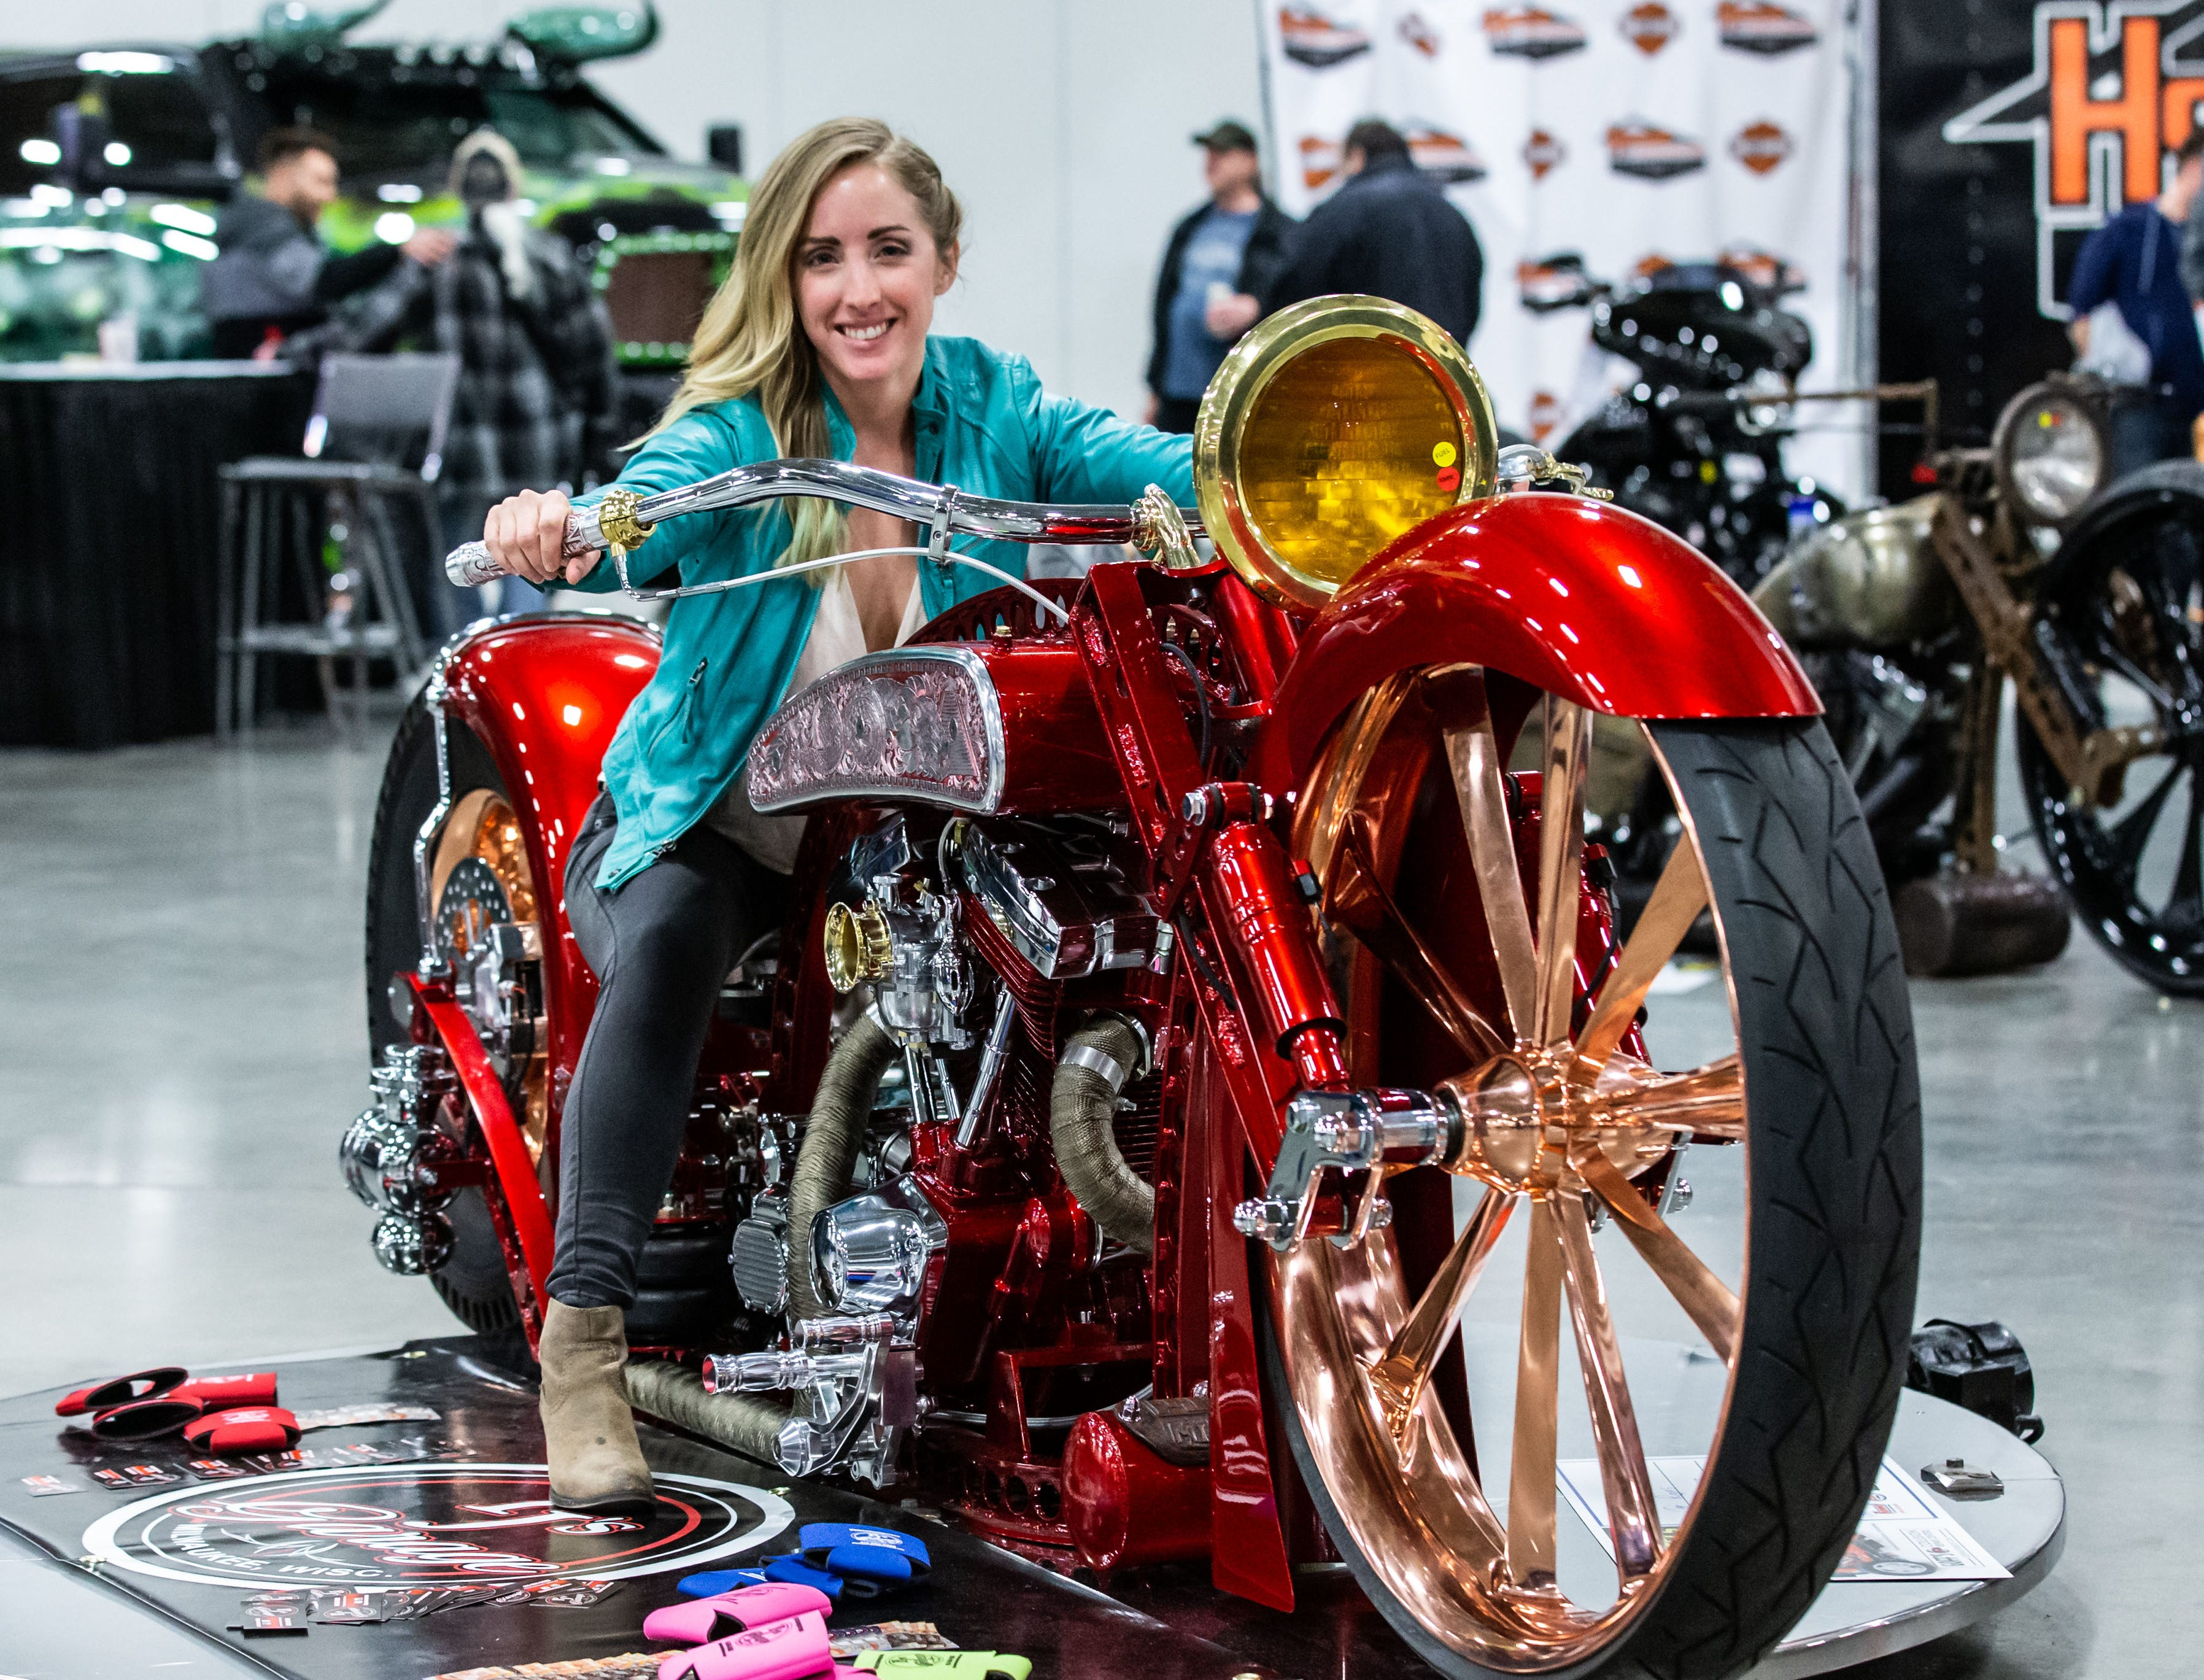 Abby Sielaff of Lake Mills checks out a 2018 Big Wheel from PJ's Custom Garage of Milwaukee during the 57th annual O'Reilly Auto Parts World of Wheels at State Fair Park in West Allis on Saturday, Feb. 23, 2019. The event features over 300 vehicles, celebrity appearances, vendors, a charity auction and more.